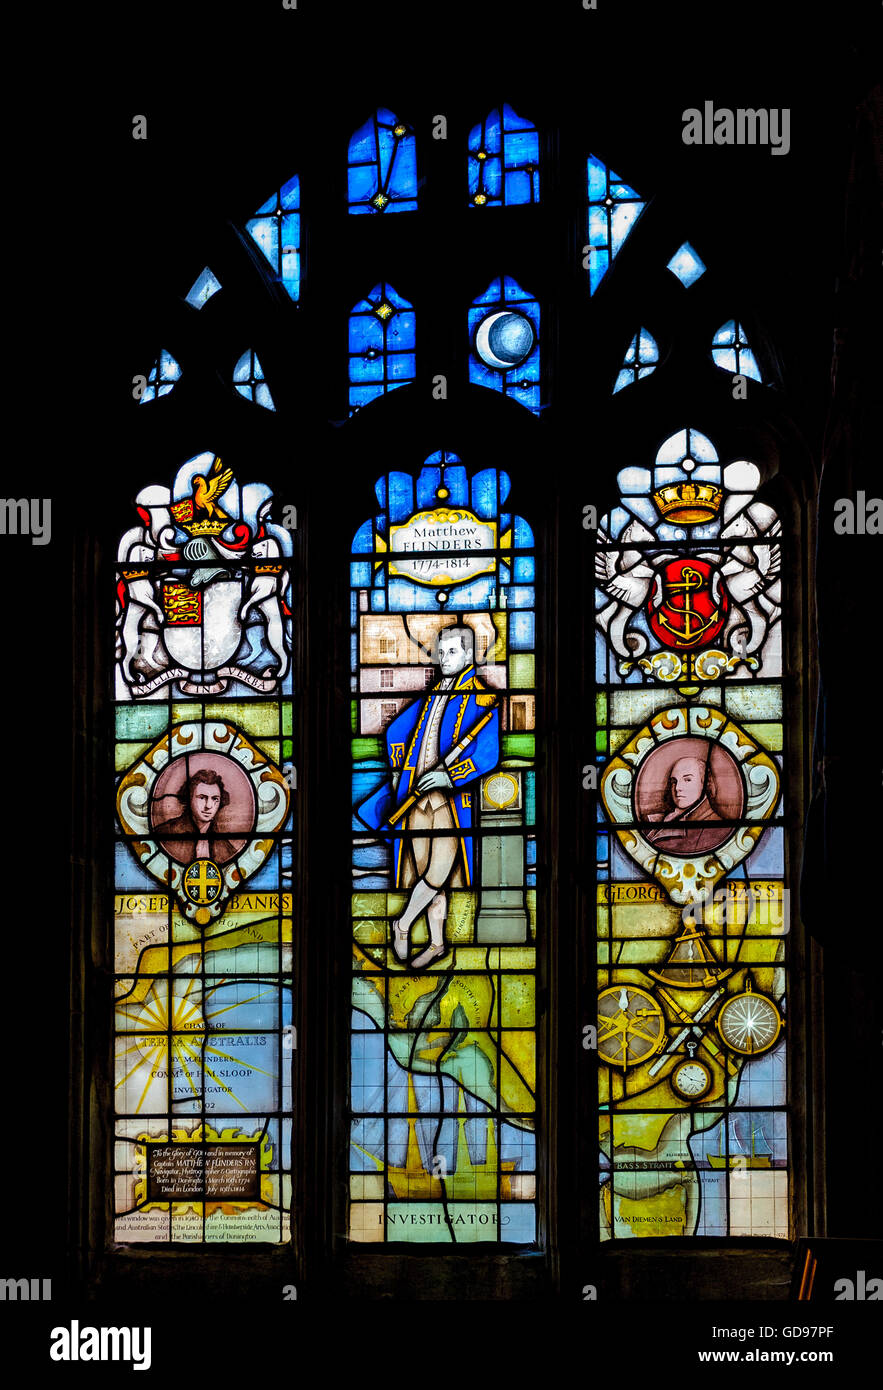 St. Mary and The Holy Rood Church, Donington, Lincolnshire - window dedicated to Matthew Flinders Stock Photo